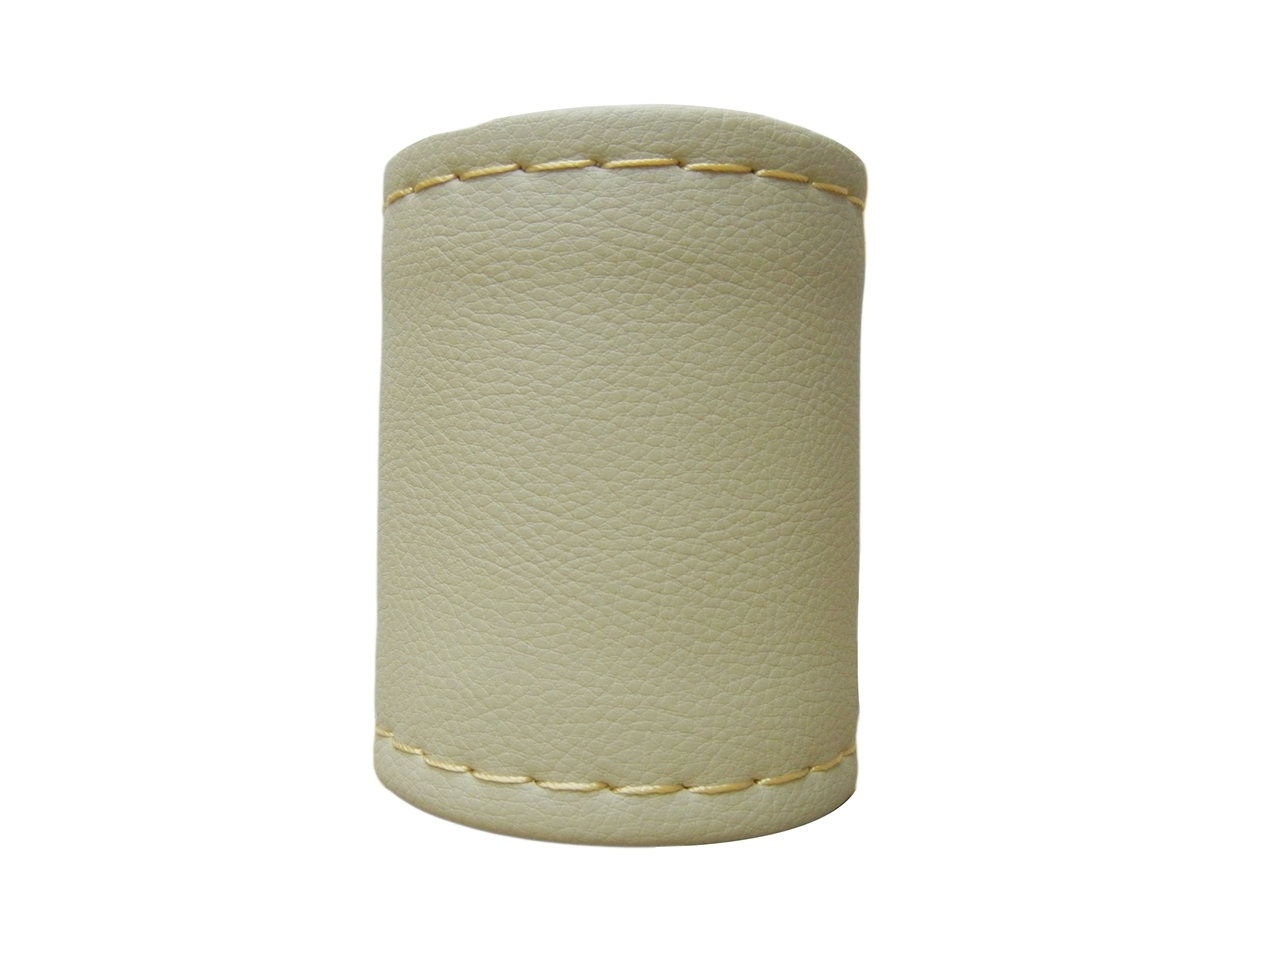 Leather Steering Cover Beige